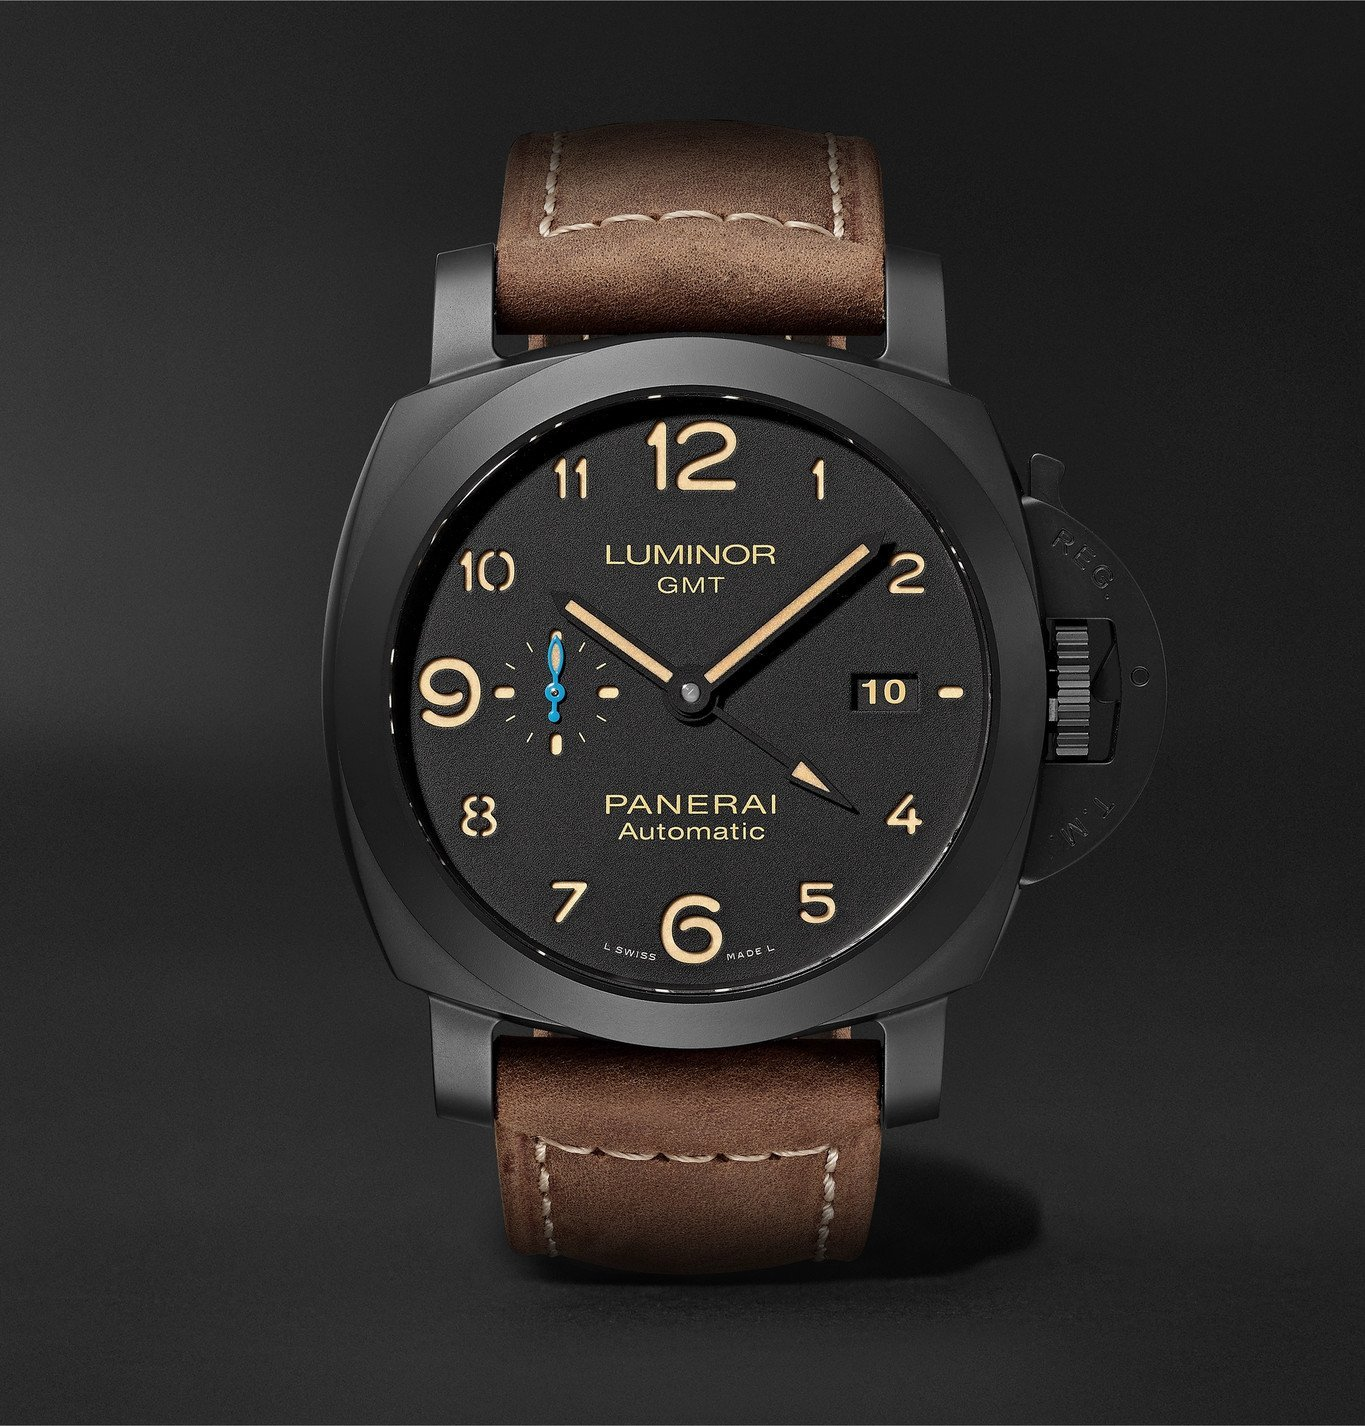 Photo: Panerai - Luminor 1950 3 Days GMT Automatic 44mm Ceramic and Leather Watch, Ref. No. PAM01441 - Black